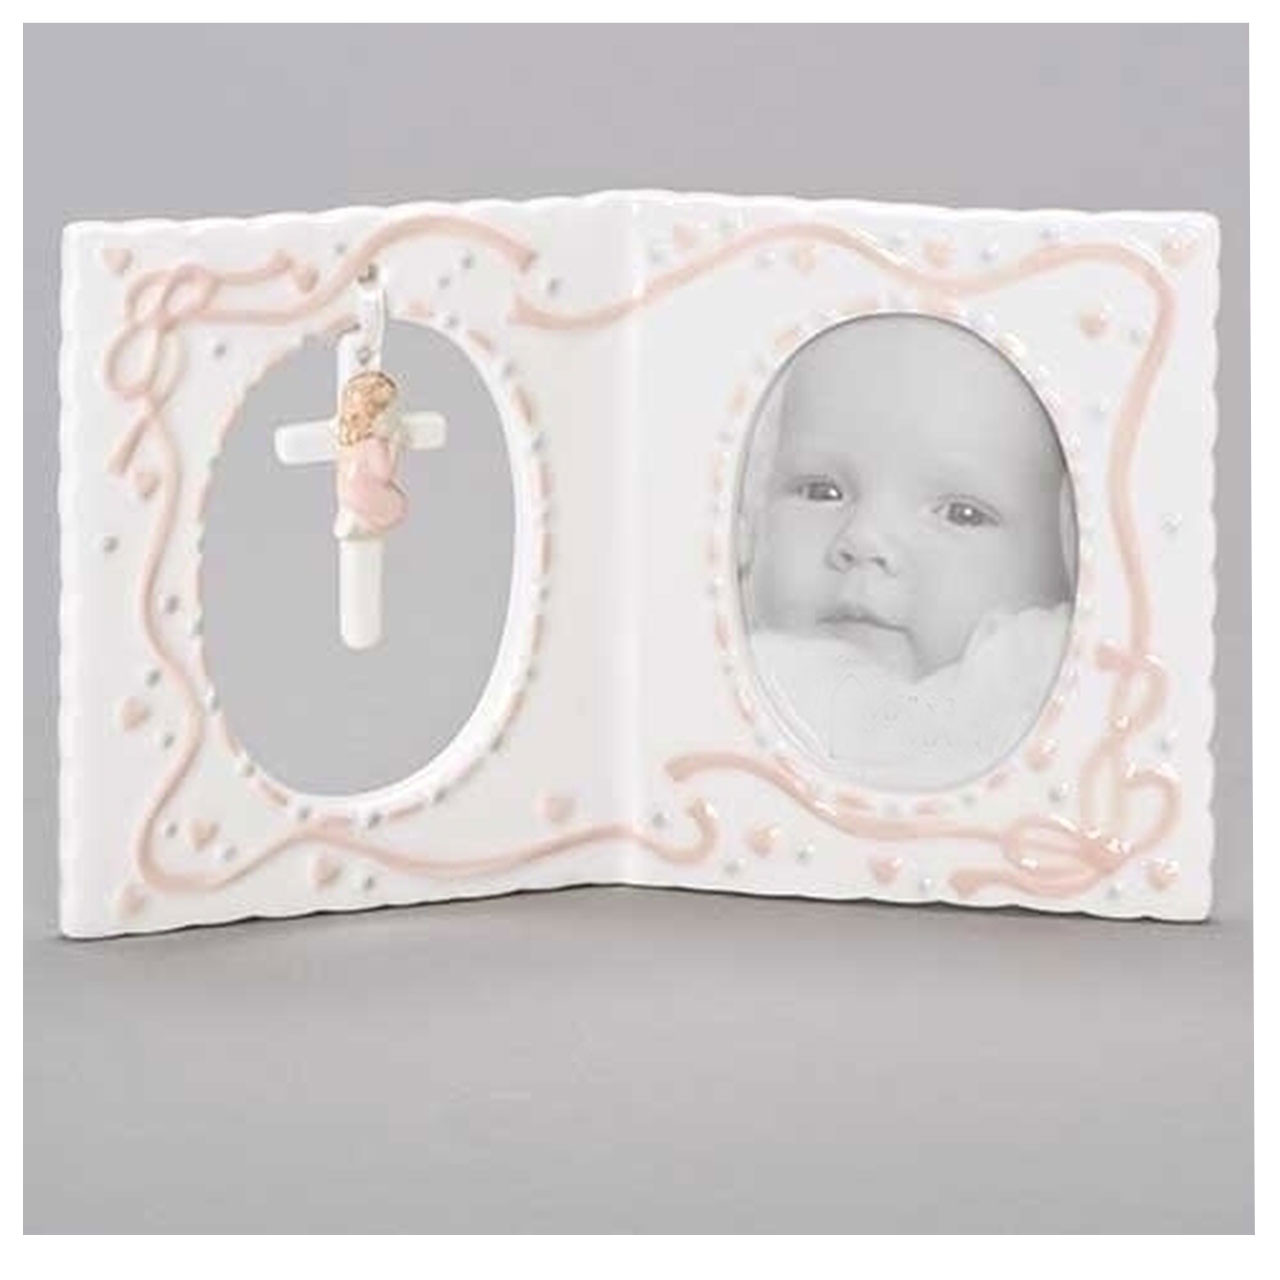 Girl's Baby Picture Frame with Hanging Baby Cross